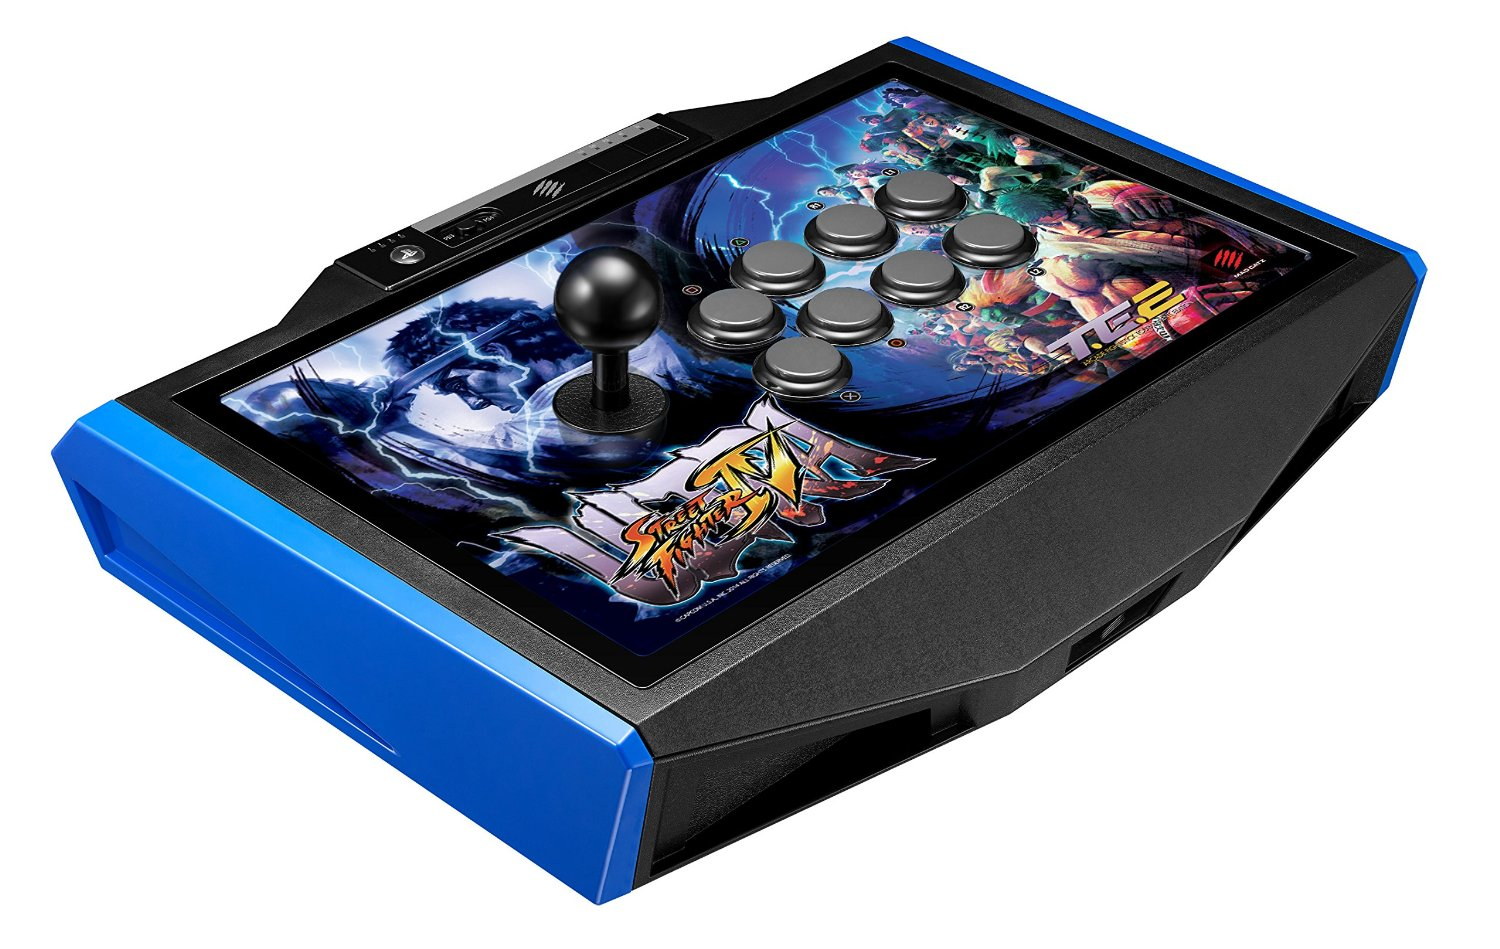 Ultra Street Fighter IV bekommt Fight Stick von Mad Catz